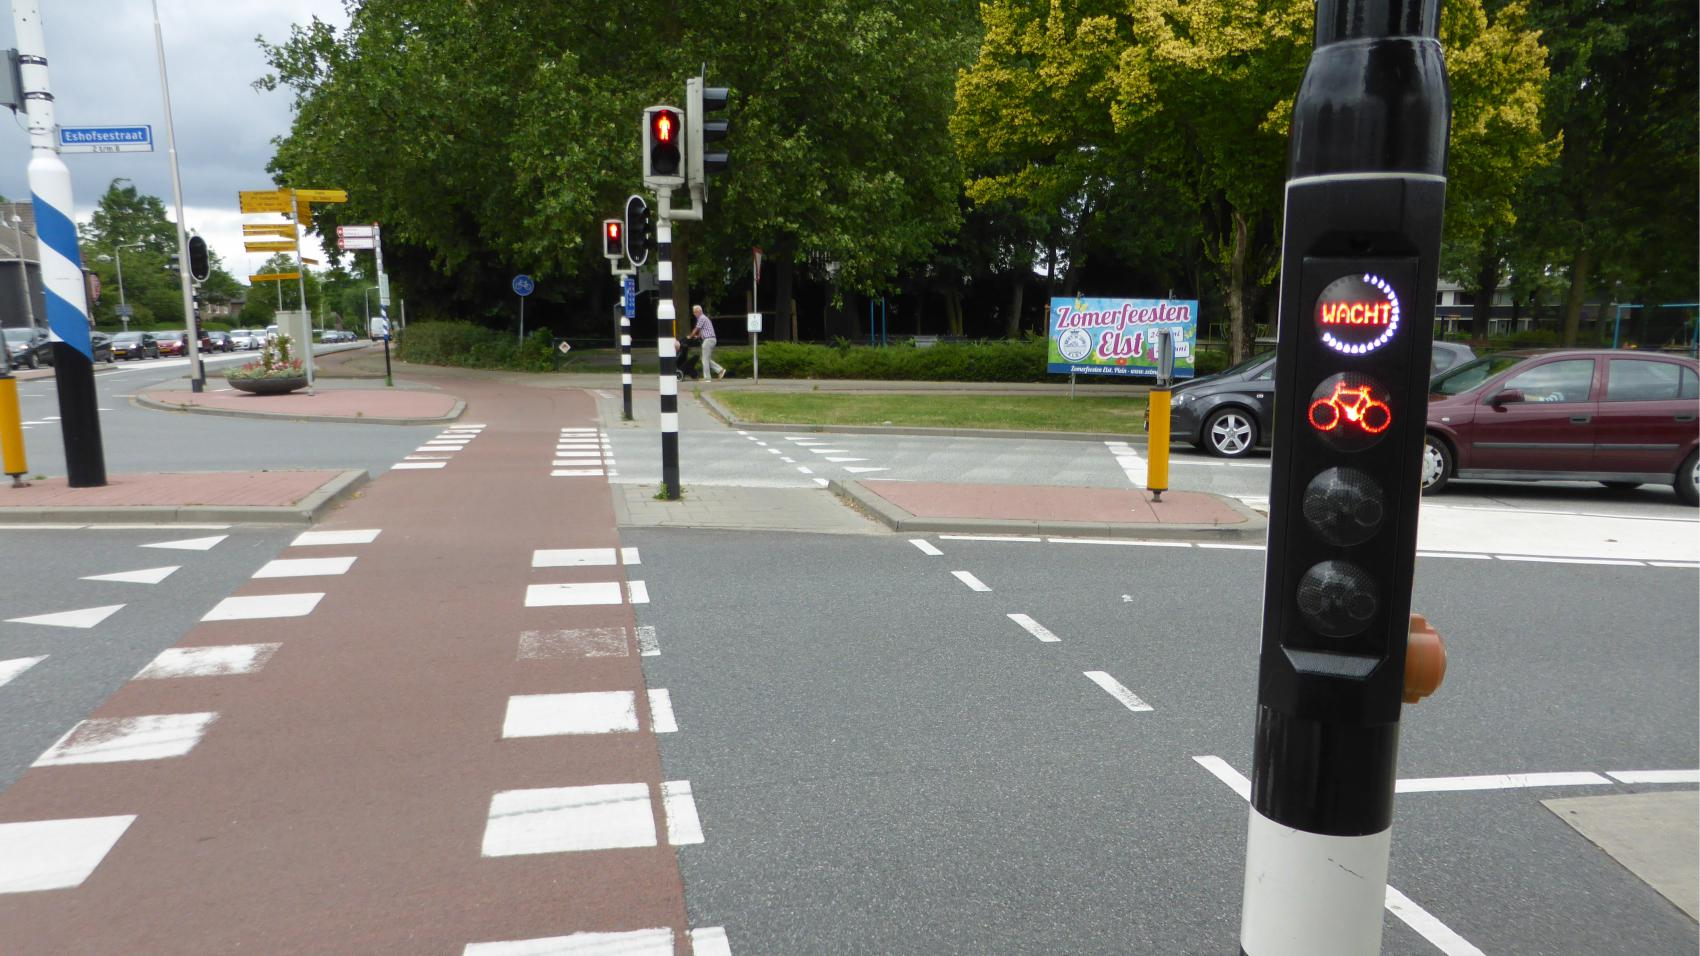 RijnWaalpad - a cycle highway with (almost) no ...